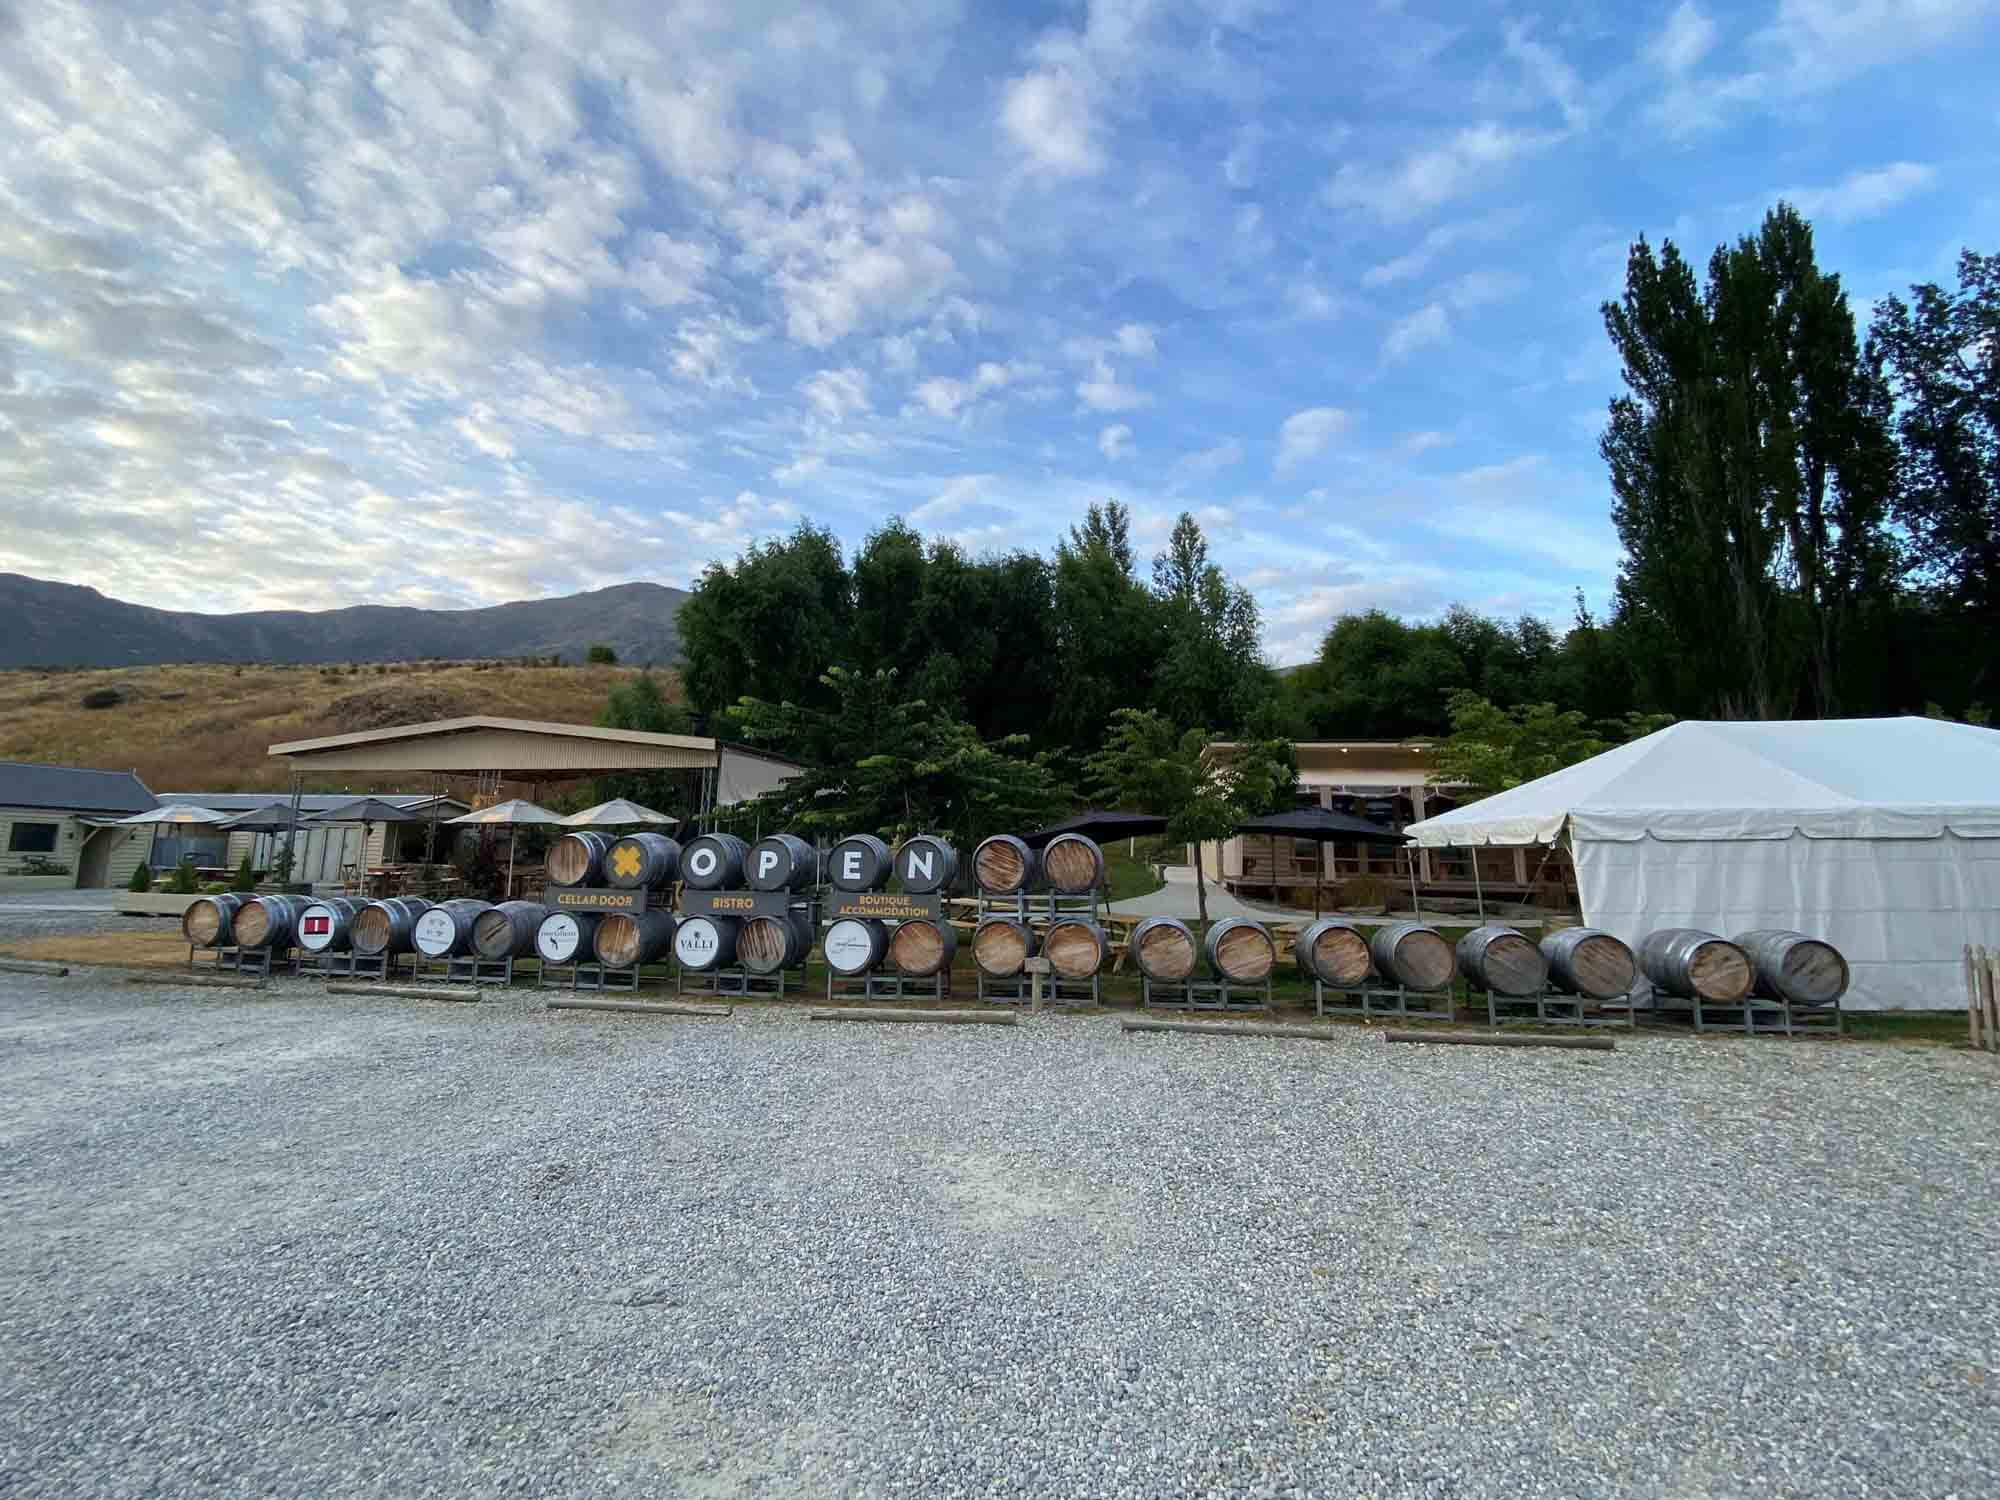 Things to do in Queenstown - Kinross Cottages - Boutique Vineyard Hotel - Queenstown New Zealand